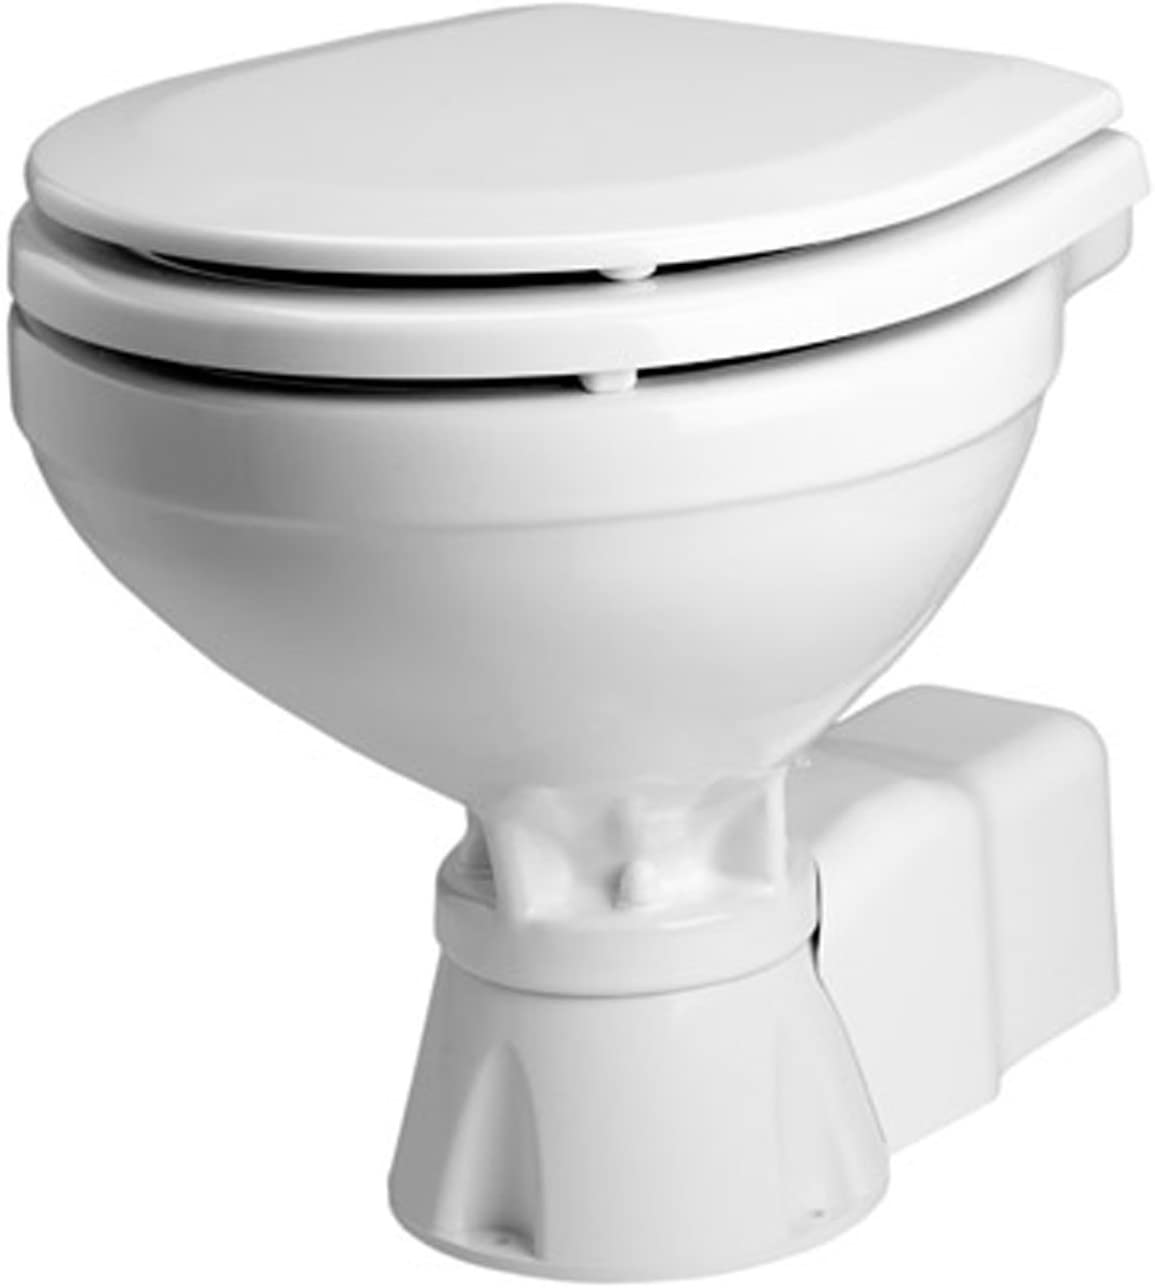 Johnson AQUAT TOILET SILENT ELECTRIC COMPACT 12V